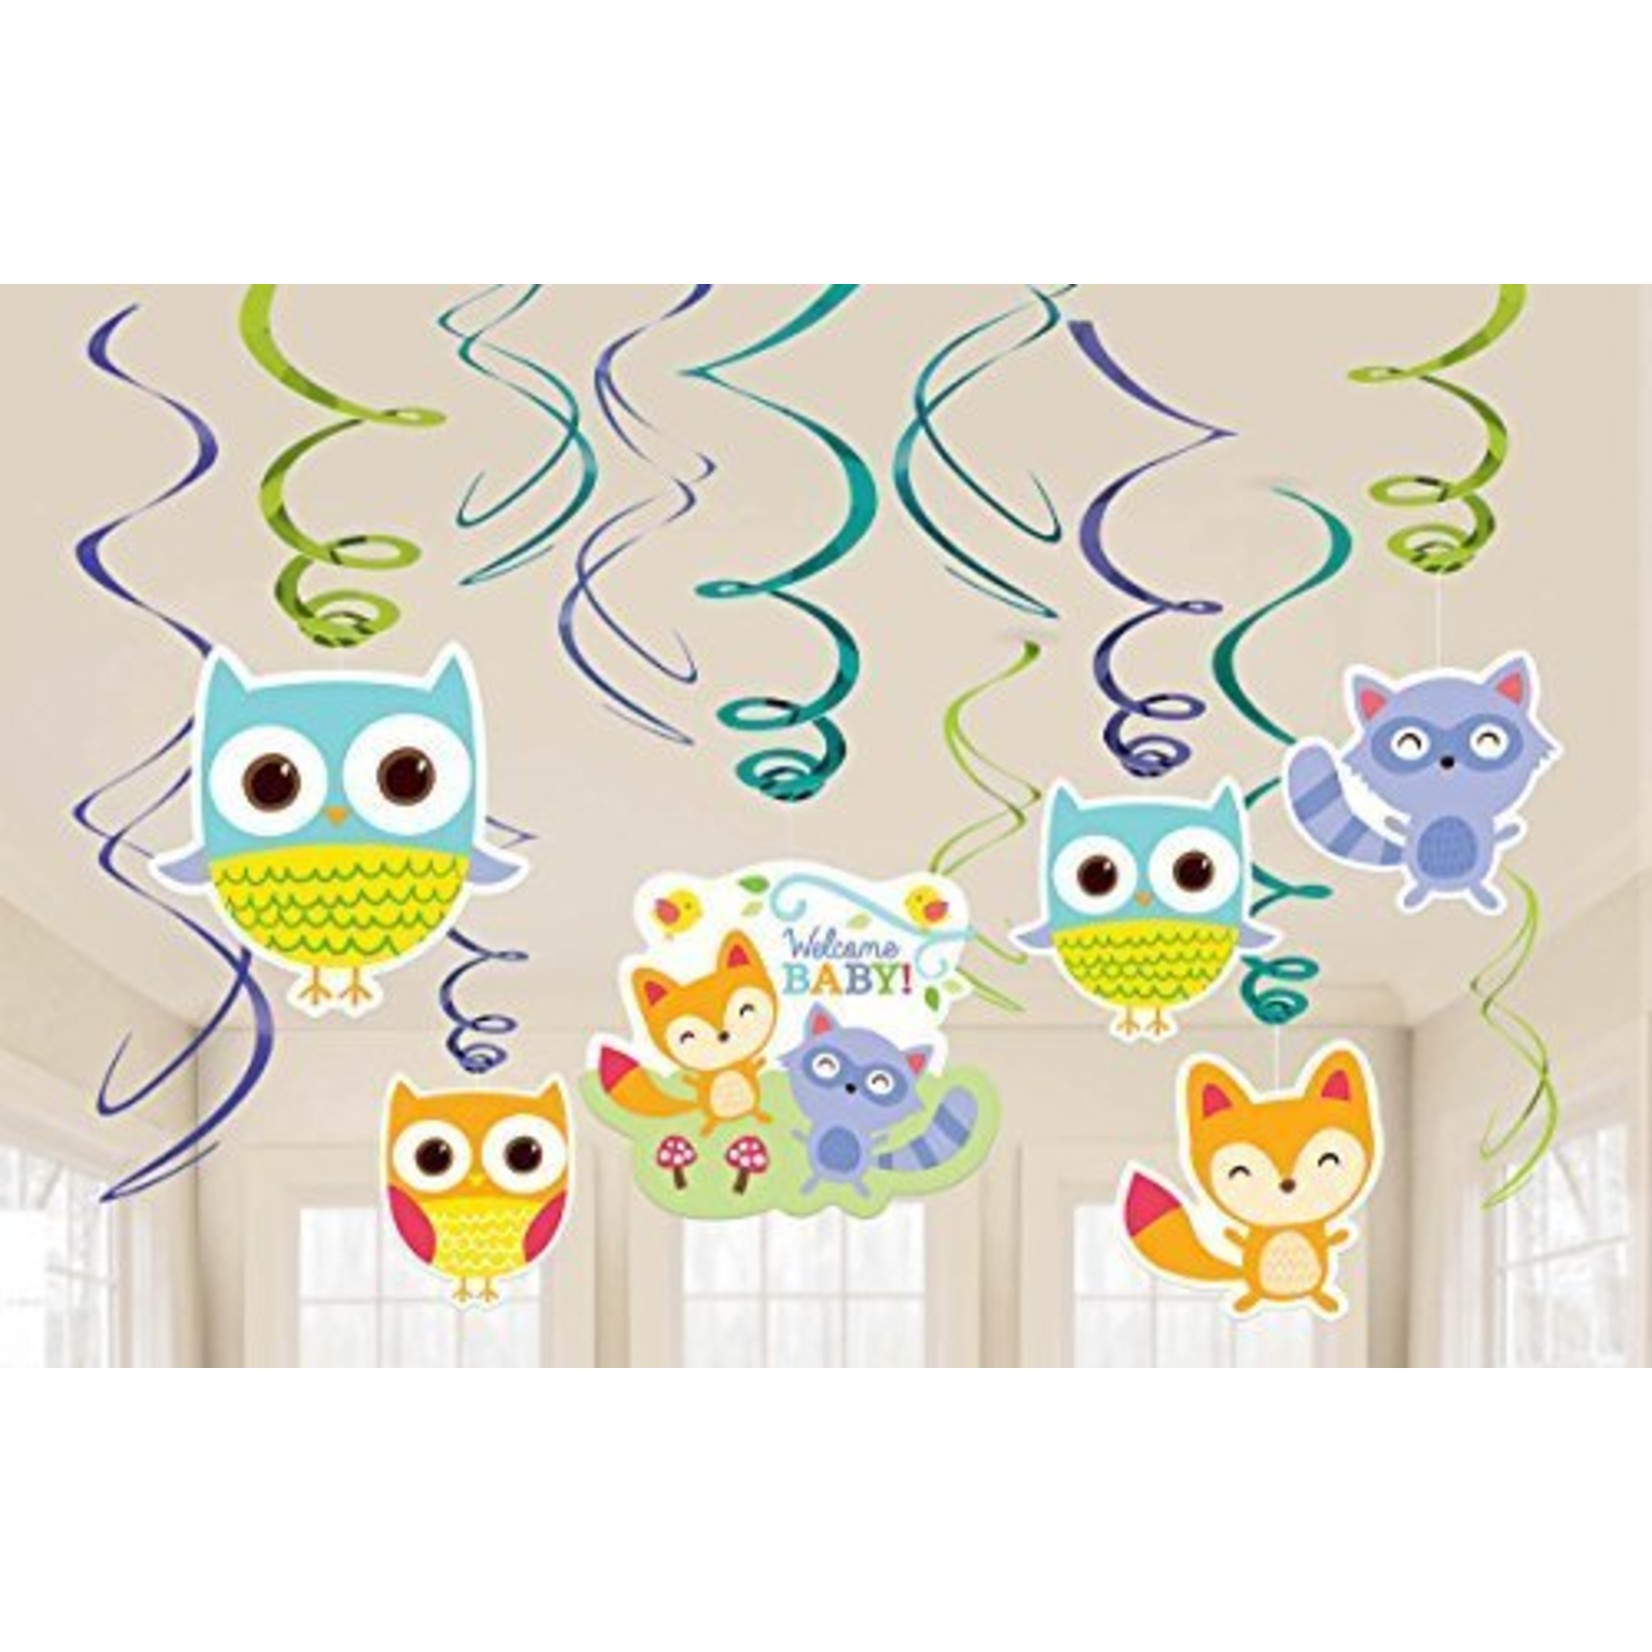 Baby Shower - Swirl Decorations - Woodland Welcome - 12pcs